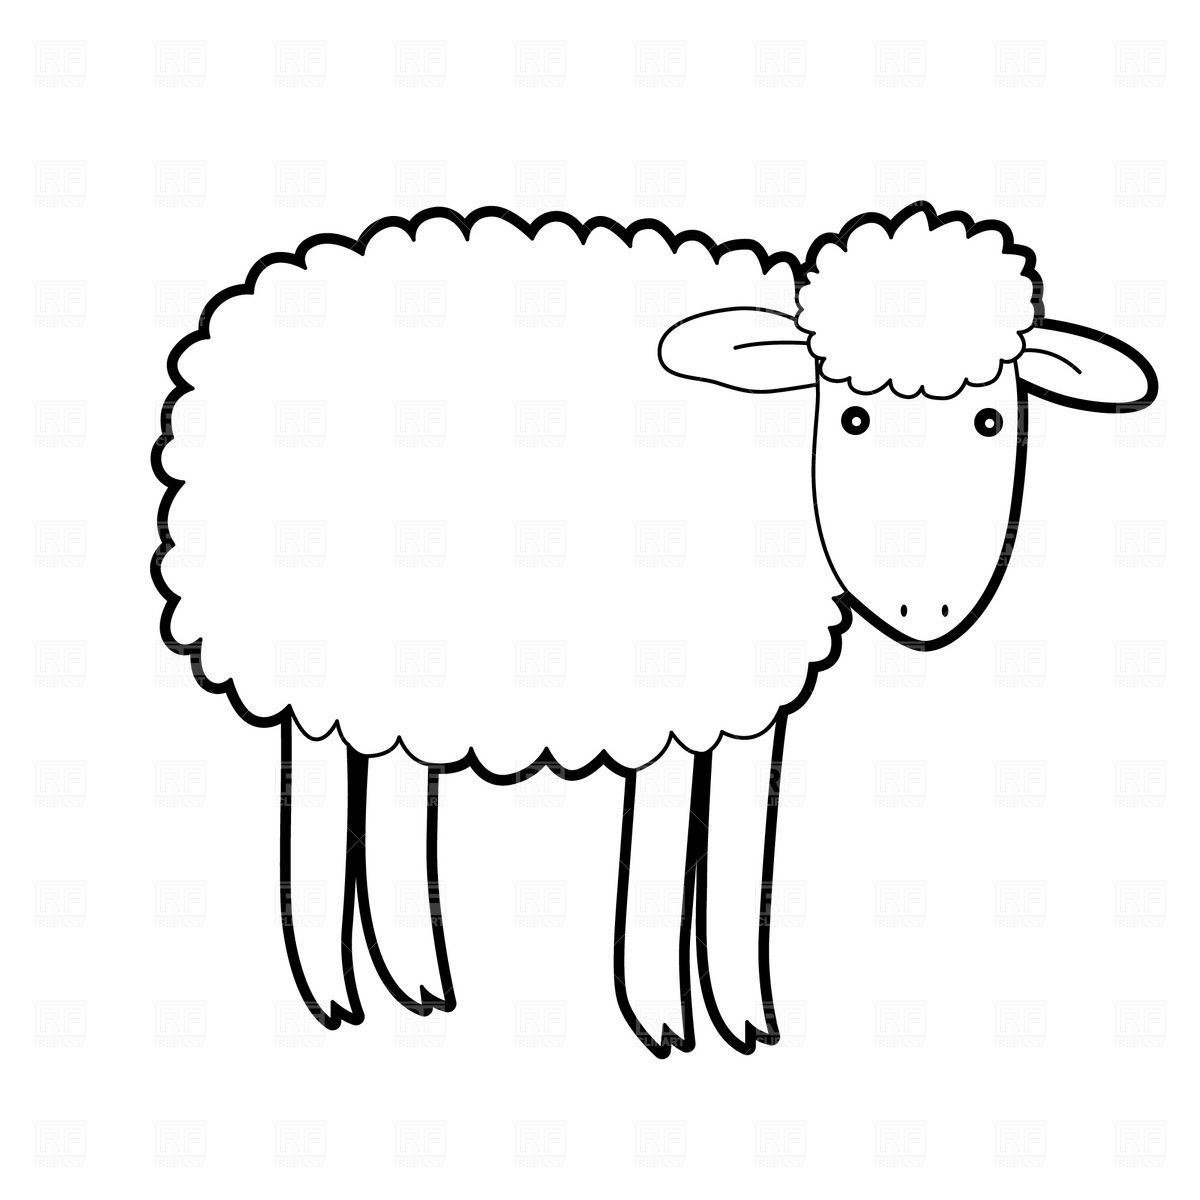 Hugedomains Com Picturesofsheep Com Is For Sale Pictures Of Sheep Clip Art Free Clip Art Cartoon Lamb